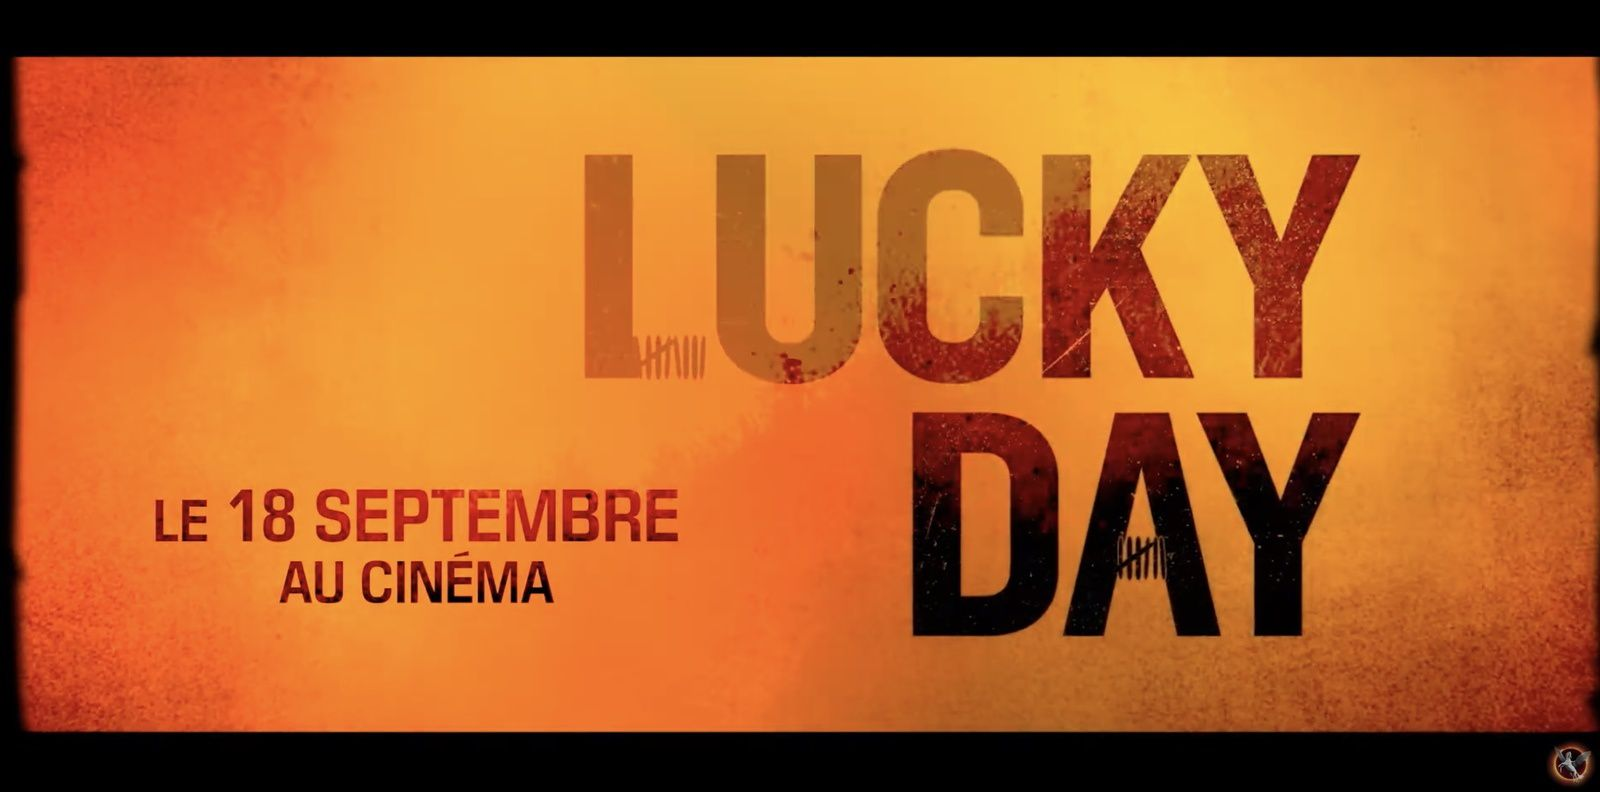 Bande-annonce du film Lucky Day, de Roger Avary (VOST).